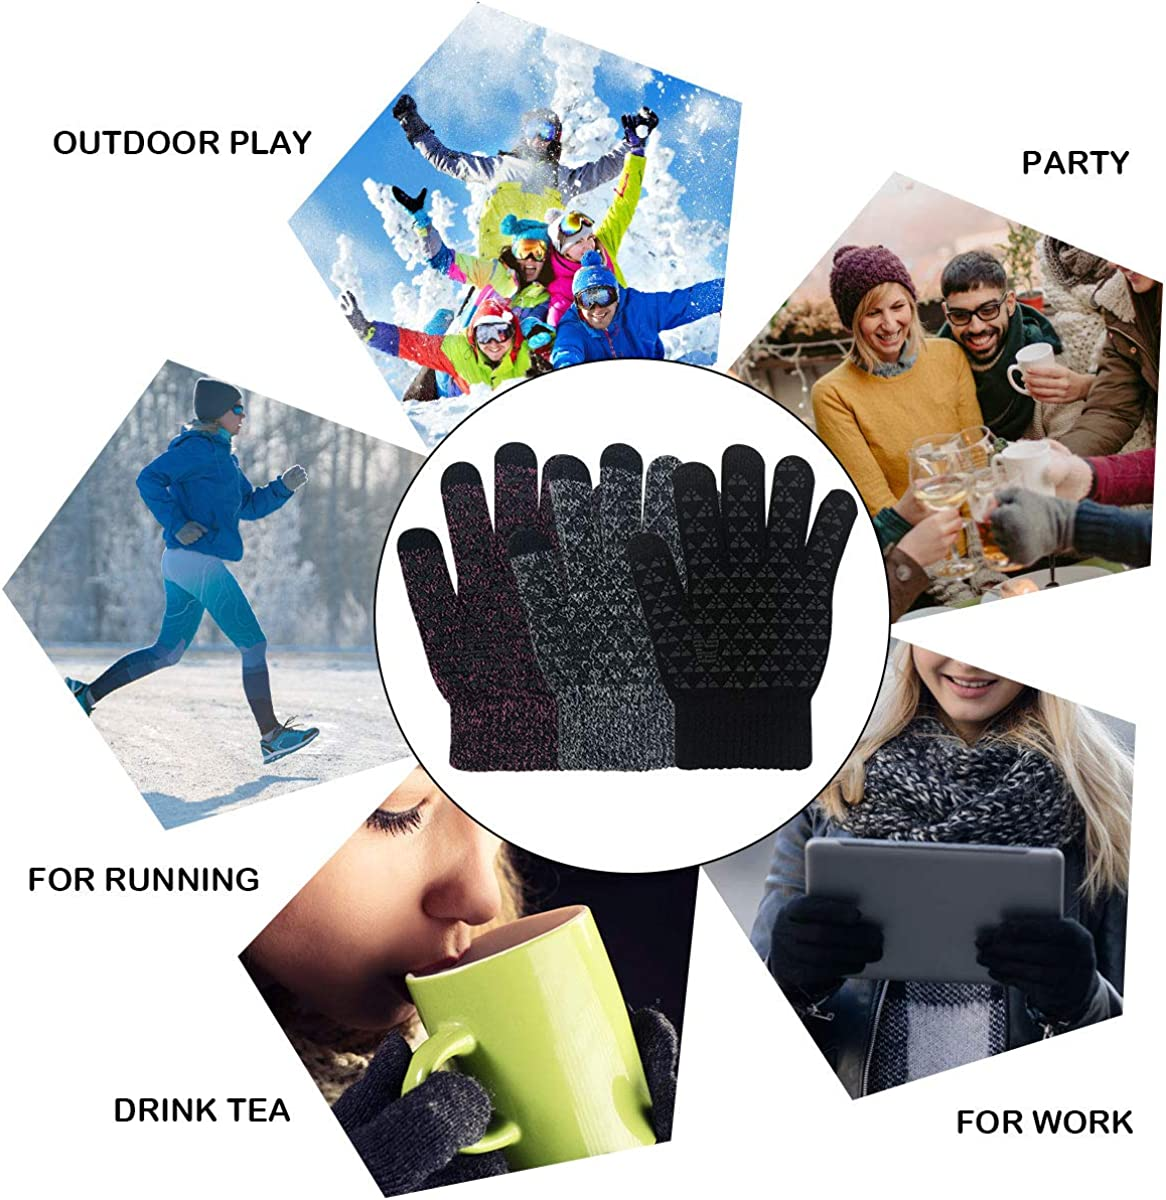 Touch Screen Gloves Winter Cycling Sports Gloves Bike Trainer Non-slip Knit Touchscreen Gloves Women Men Outdoor Accessories Cycling Running Mittens for Ladies